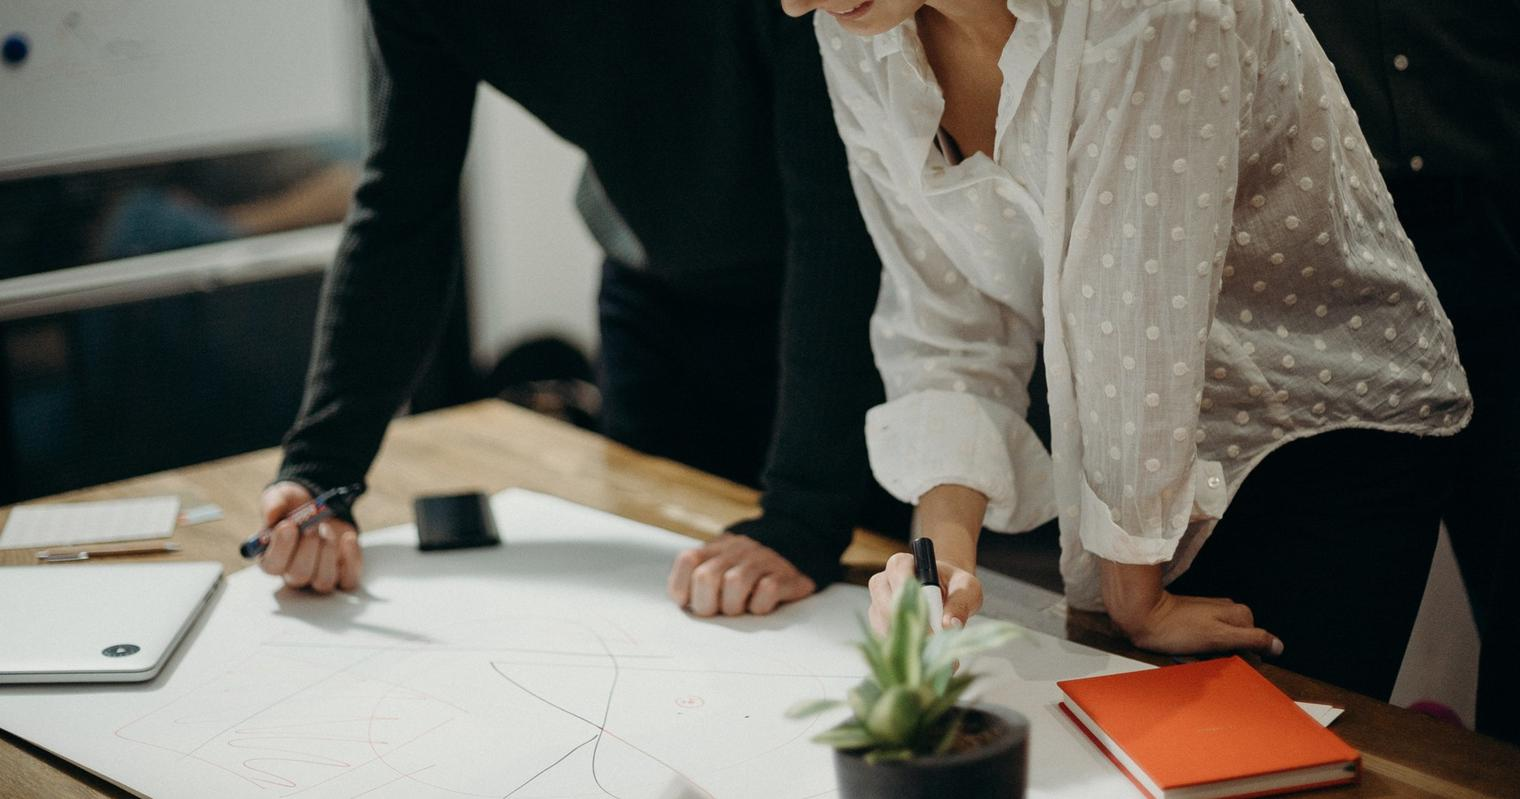 10 Careers To Consider If You Love Working With People